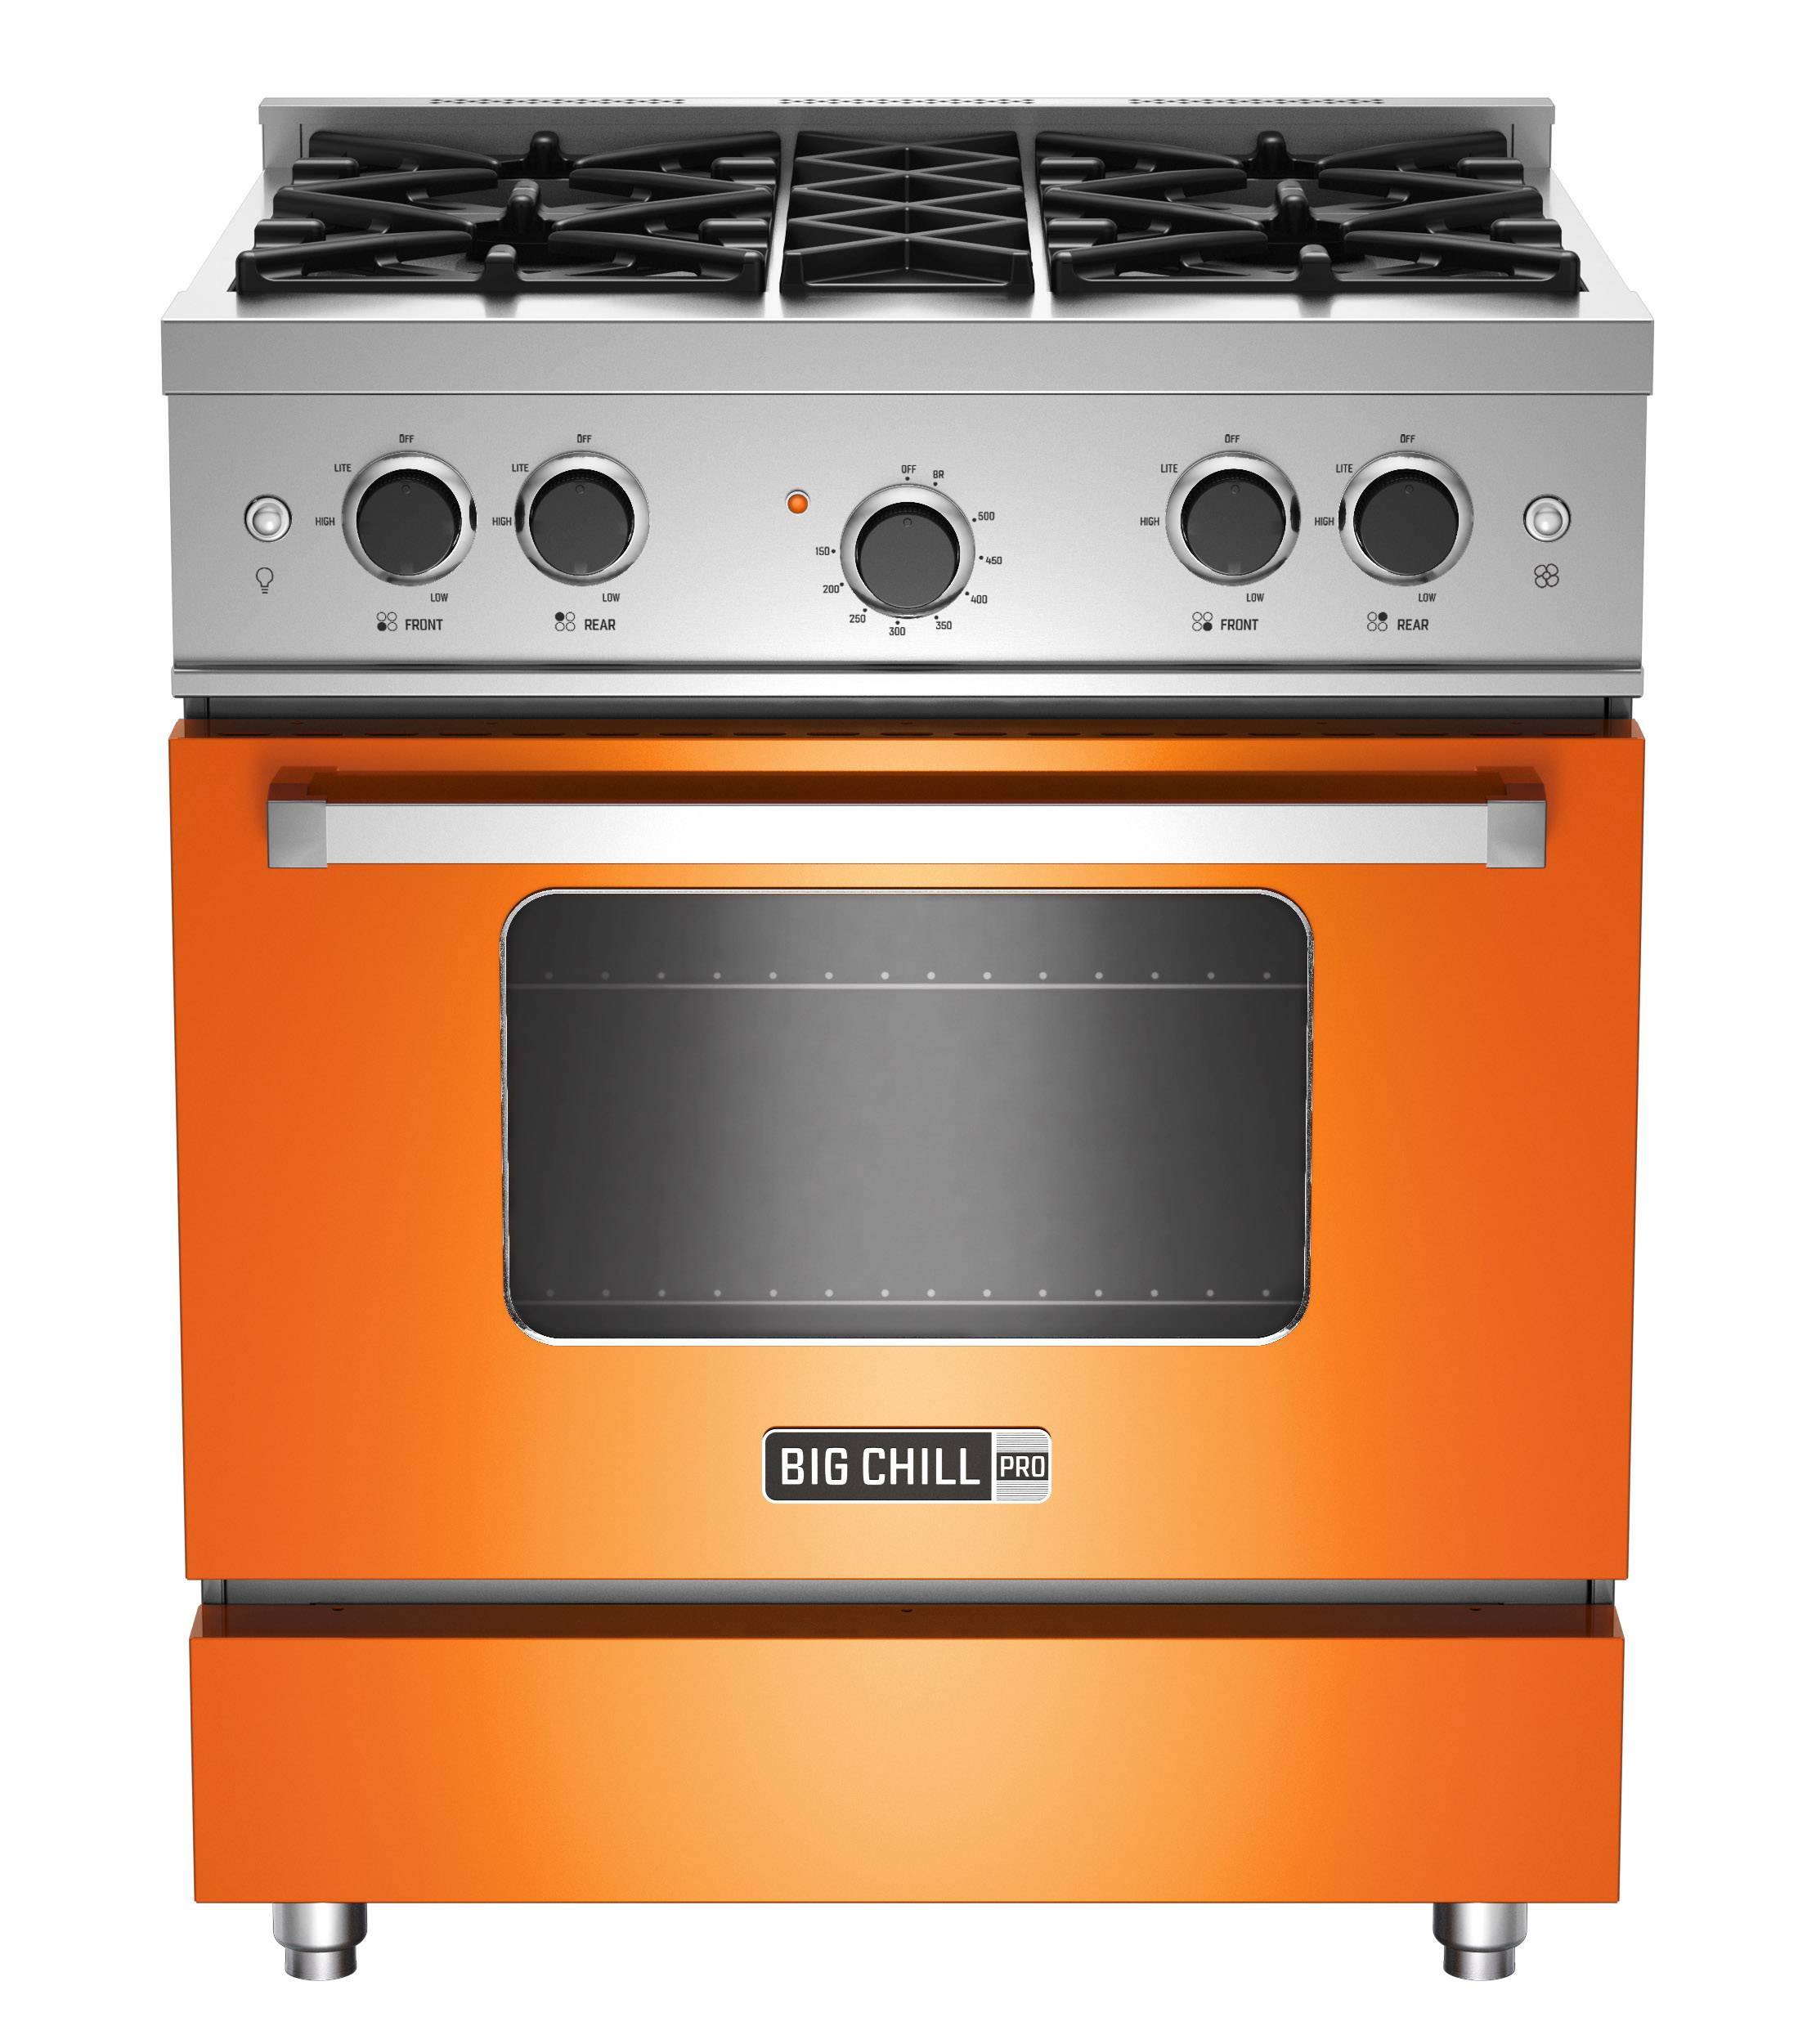 With strong color trending in kitchens, Big Chill's vibrant hues in fridges, ovens and ranges -- like this one in orange -- hit the style mark. As a pop of color in an otherwise low key kitchen, or as part of an overall exuberant space, appliances like these, particularly with some retro details, stand out from the standard stainless offerings.